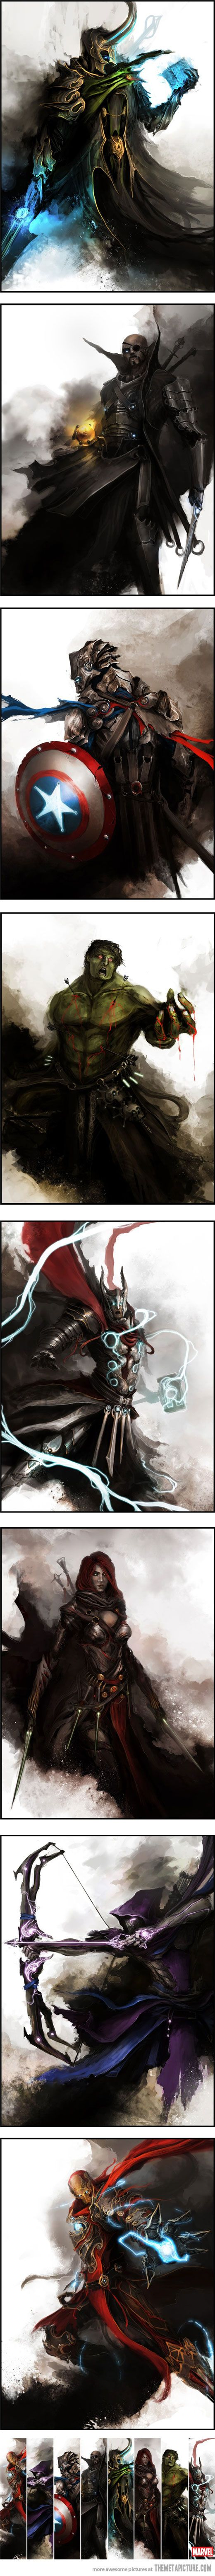 The Avengers: Medieval Fantasy Style